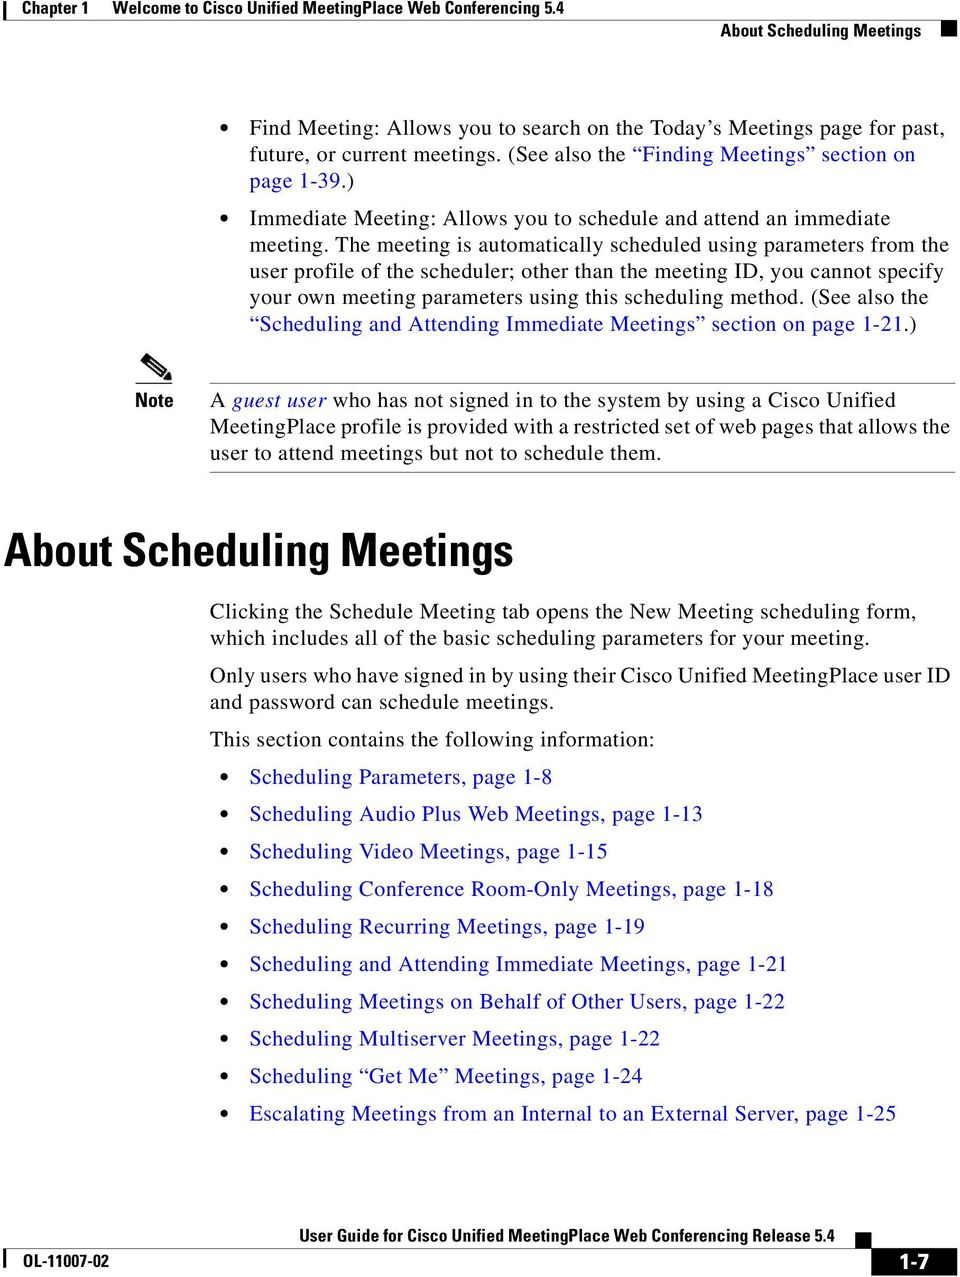 The meeting is automatically scheduled using parameters from the user profile of the scheduler; other than the meeting ID, you cannot specify your own meeting parameters using this scheduling method.